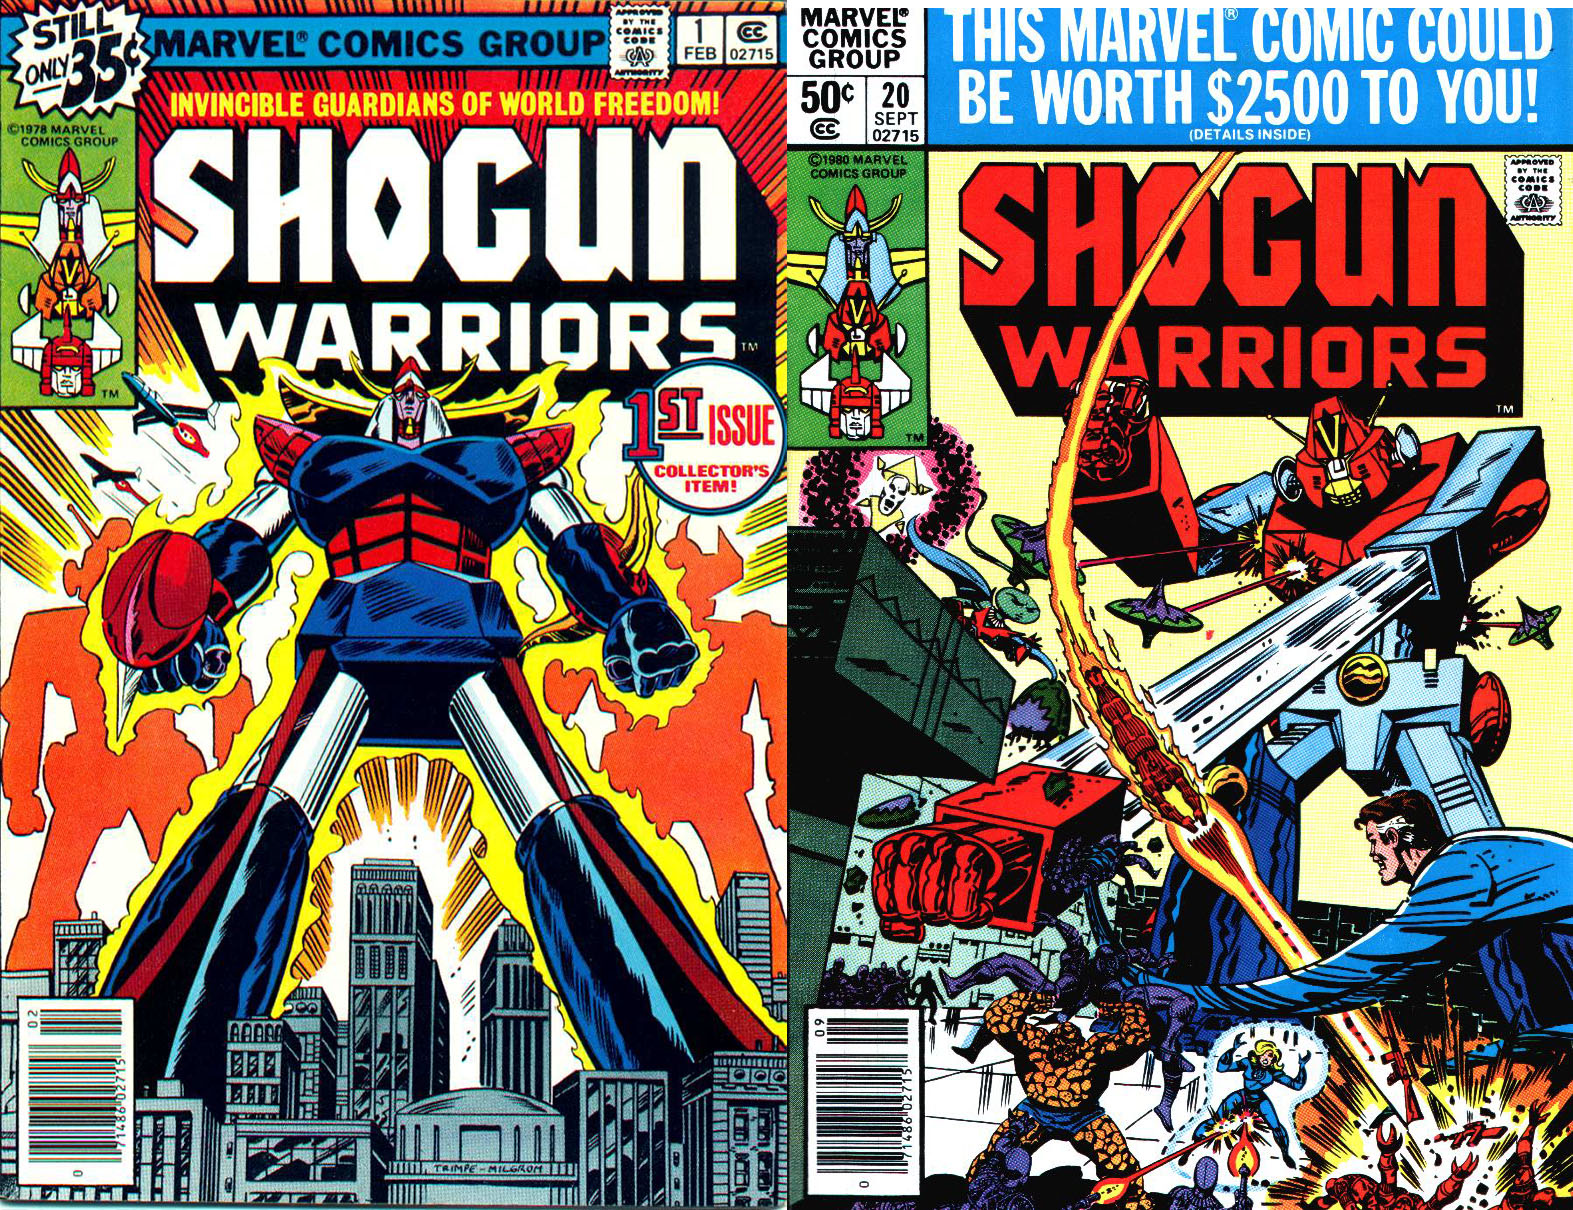 Shogun Warriors Marvel comic